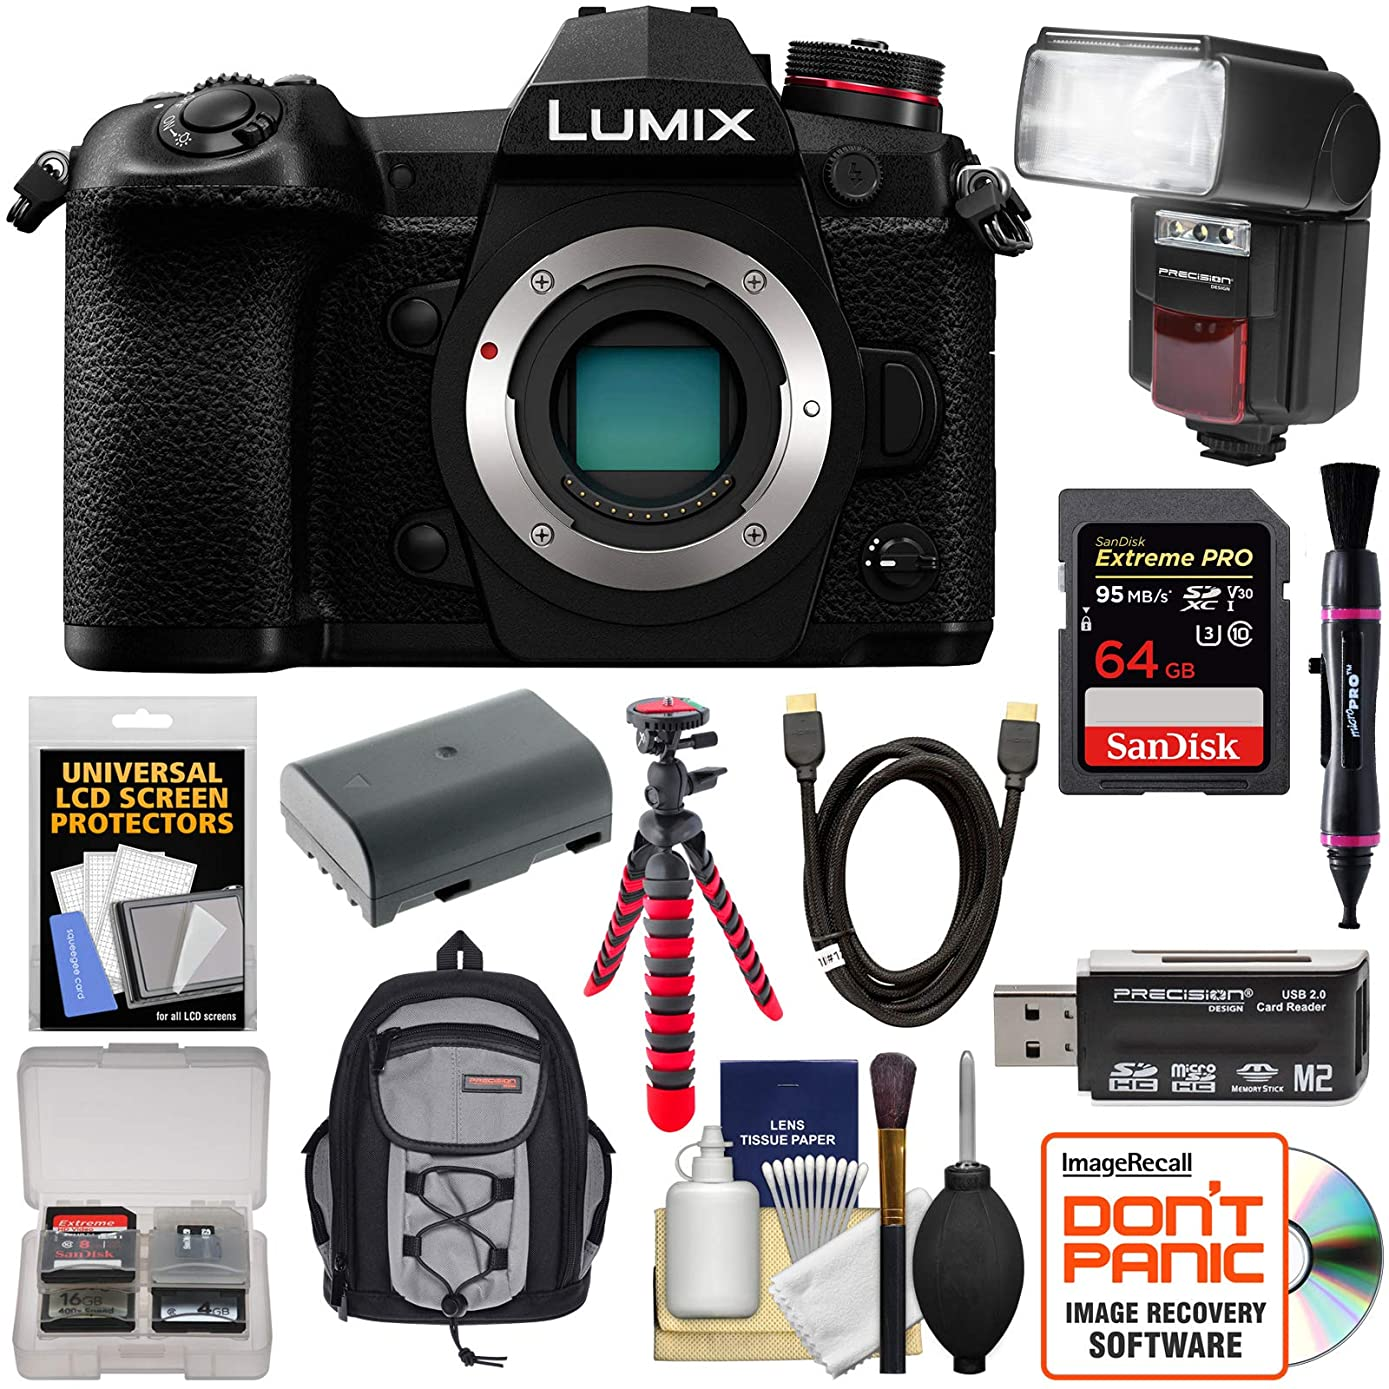 Panasonic Lumix DC-G9 4K Wi-Fi Digital Camera Body with 64GB Card + Battery + Backpack + Flash + Flex Tripod + Kit